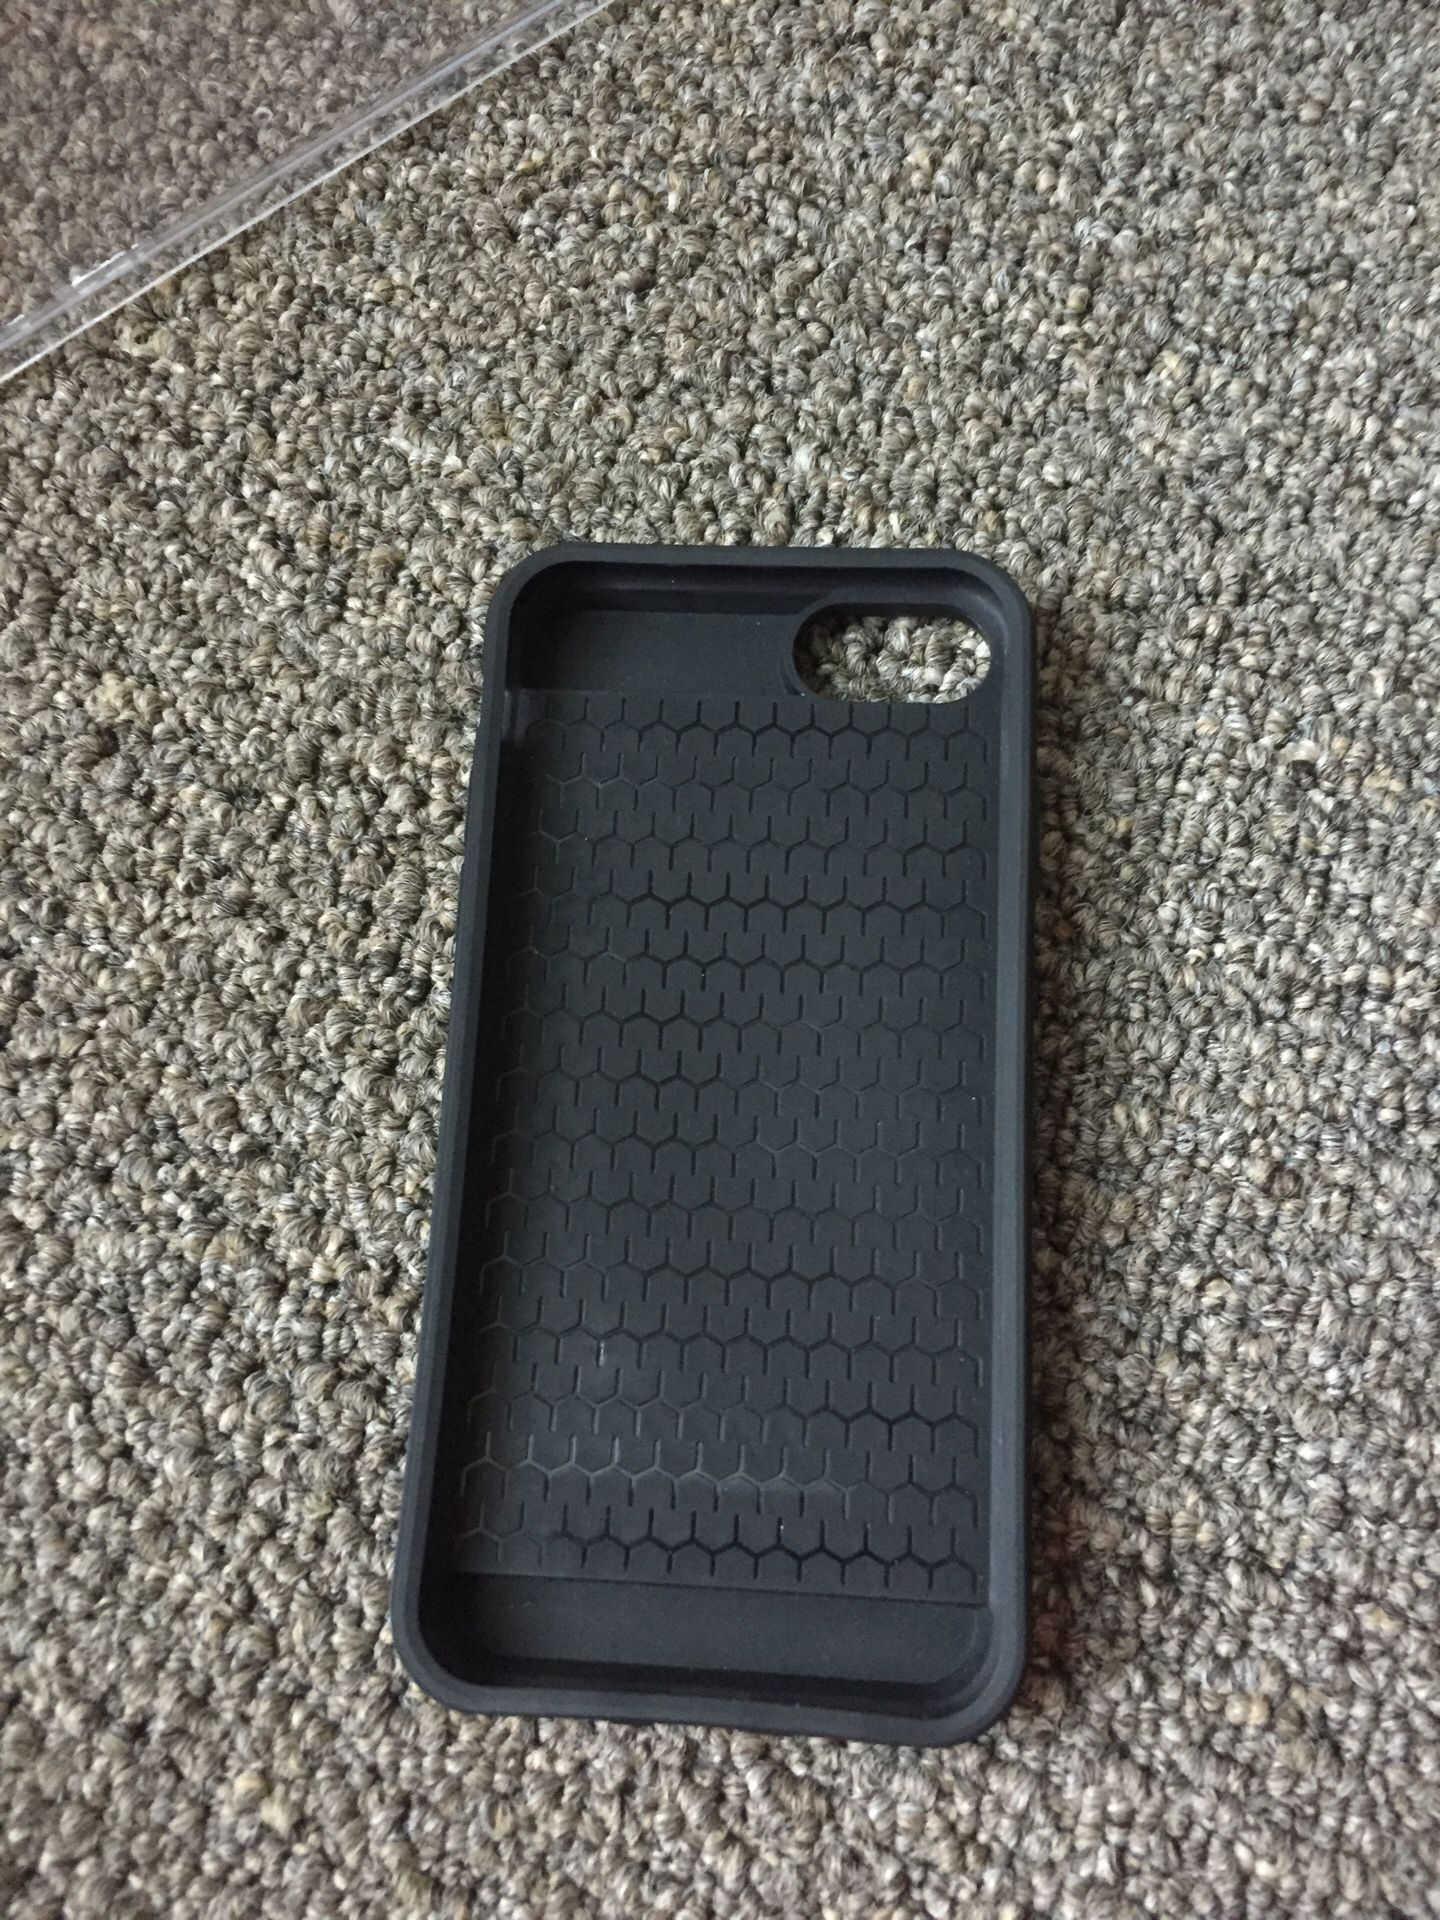 iPhone case for iPhone 6